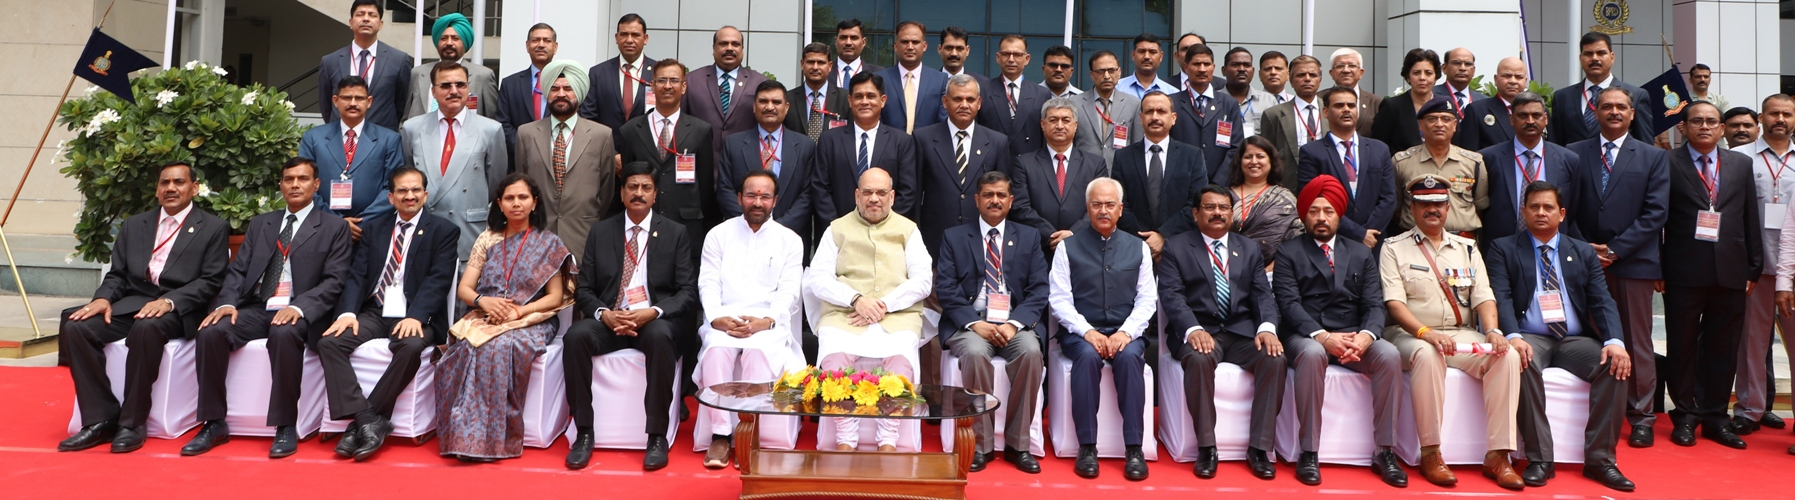 Union Minister for Home Affairs Shri Amit Shah presiding over the 49th Foundation Day of Bureau of Police Research and Development (BPRD) as Chief Guest, in  New Delhi on  August  2019.